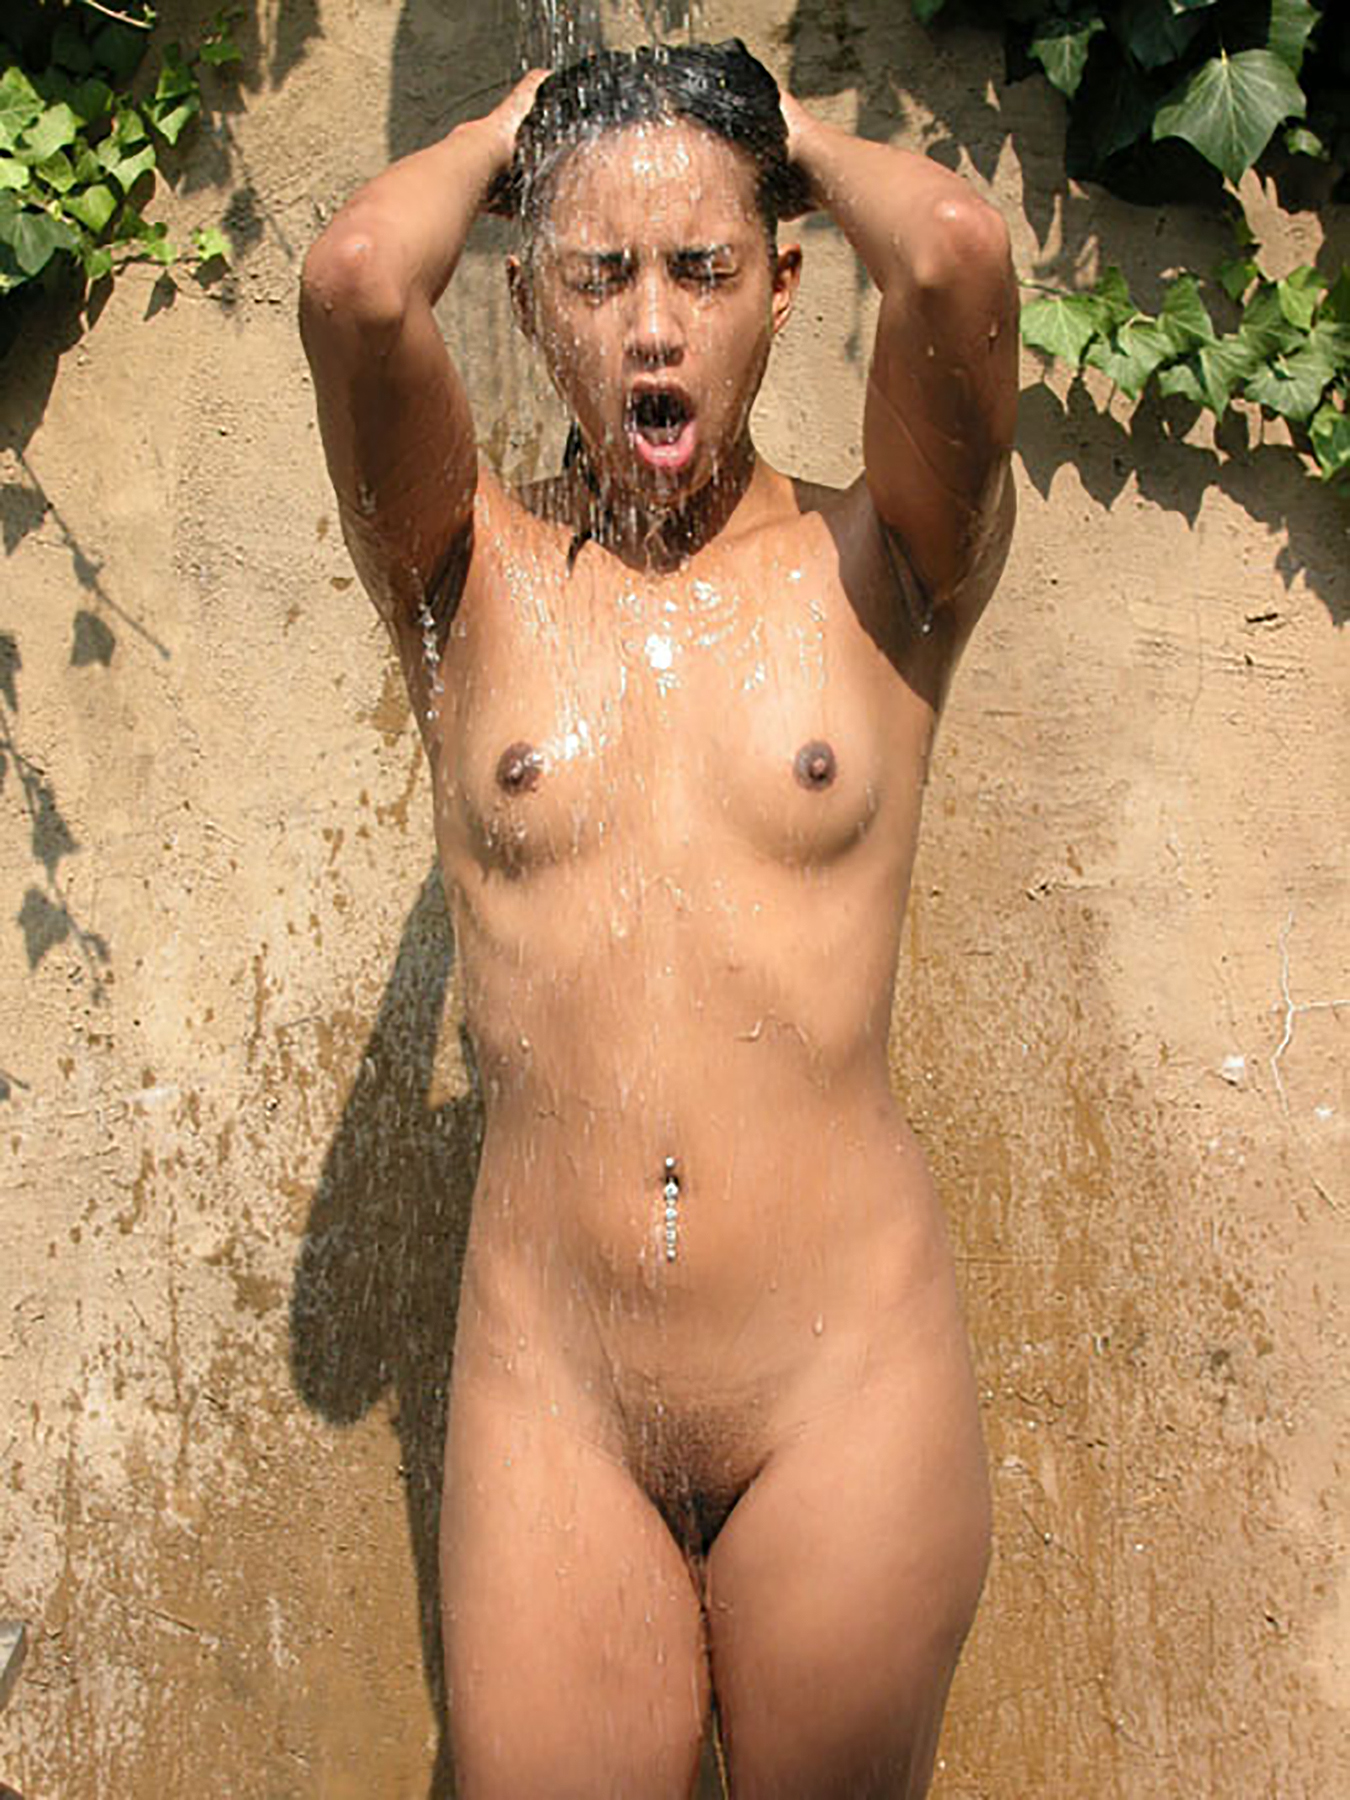 Hannah_frontal_nude_eyes_closed_dreamy_August_2003_bathing_outdoors_cold_shower